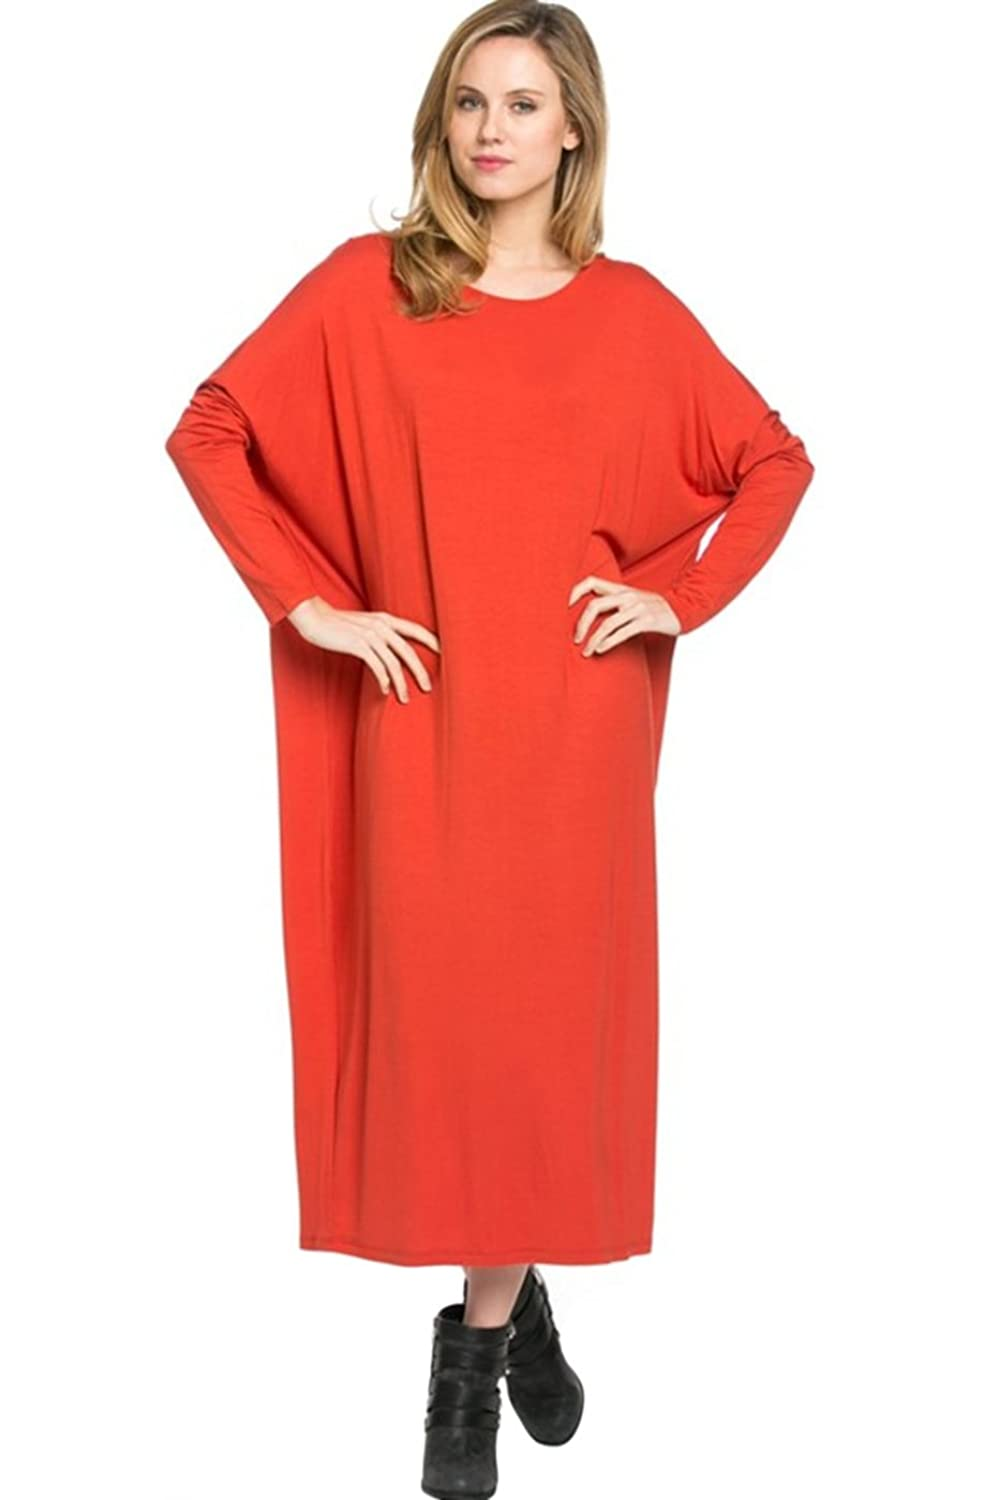 2LUV Women's Long-Sleeve, Dolman Midi Dress